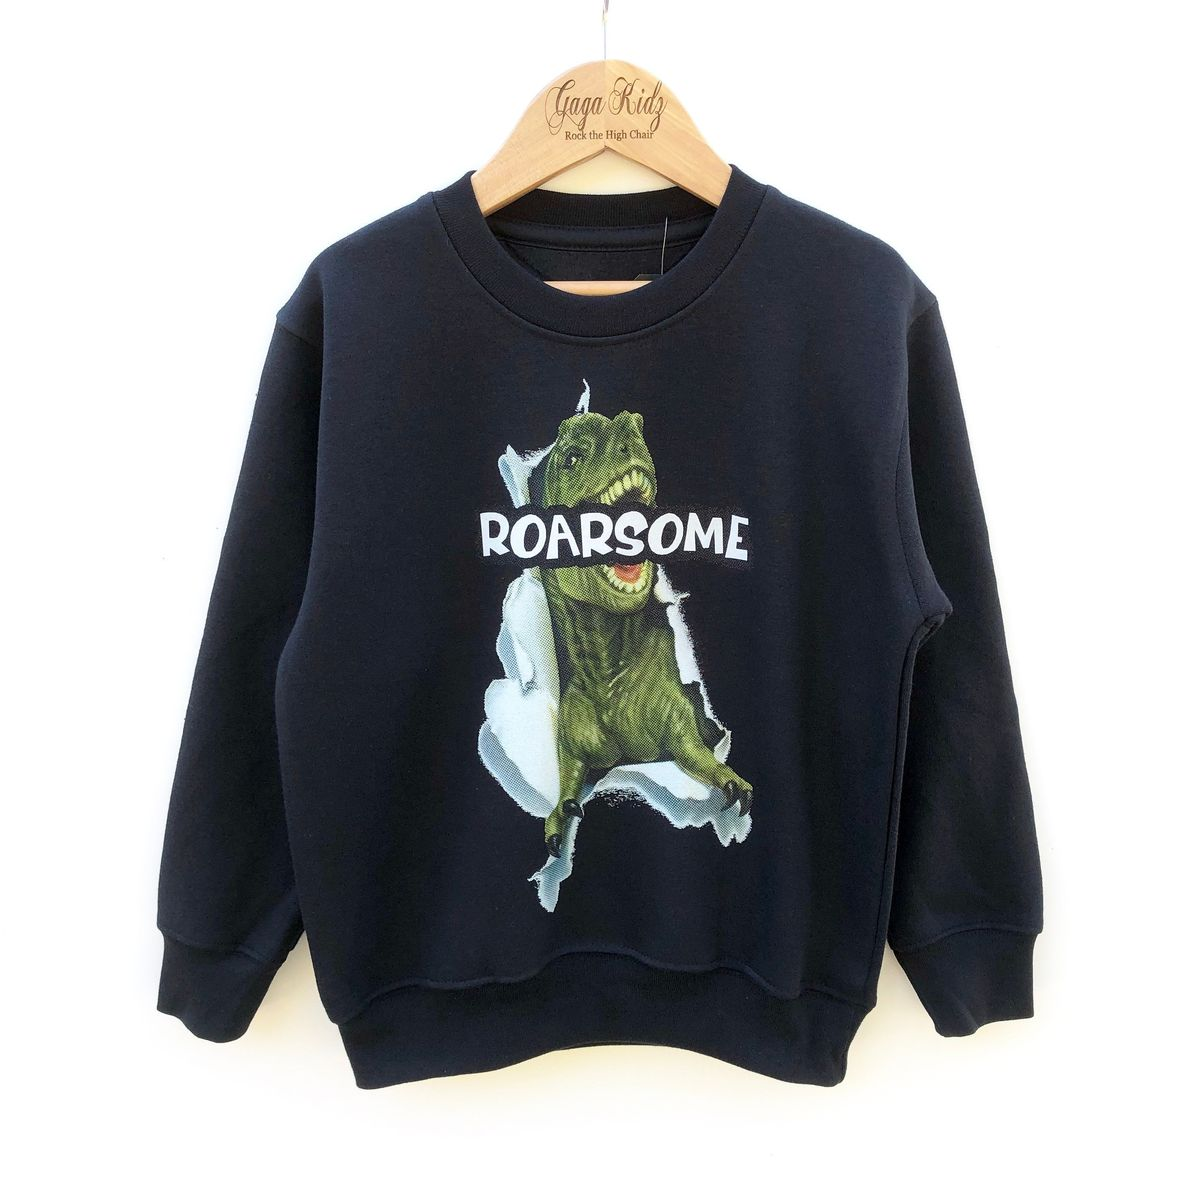 Roarsome Dinosaur Sweatshirt - product images  of